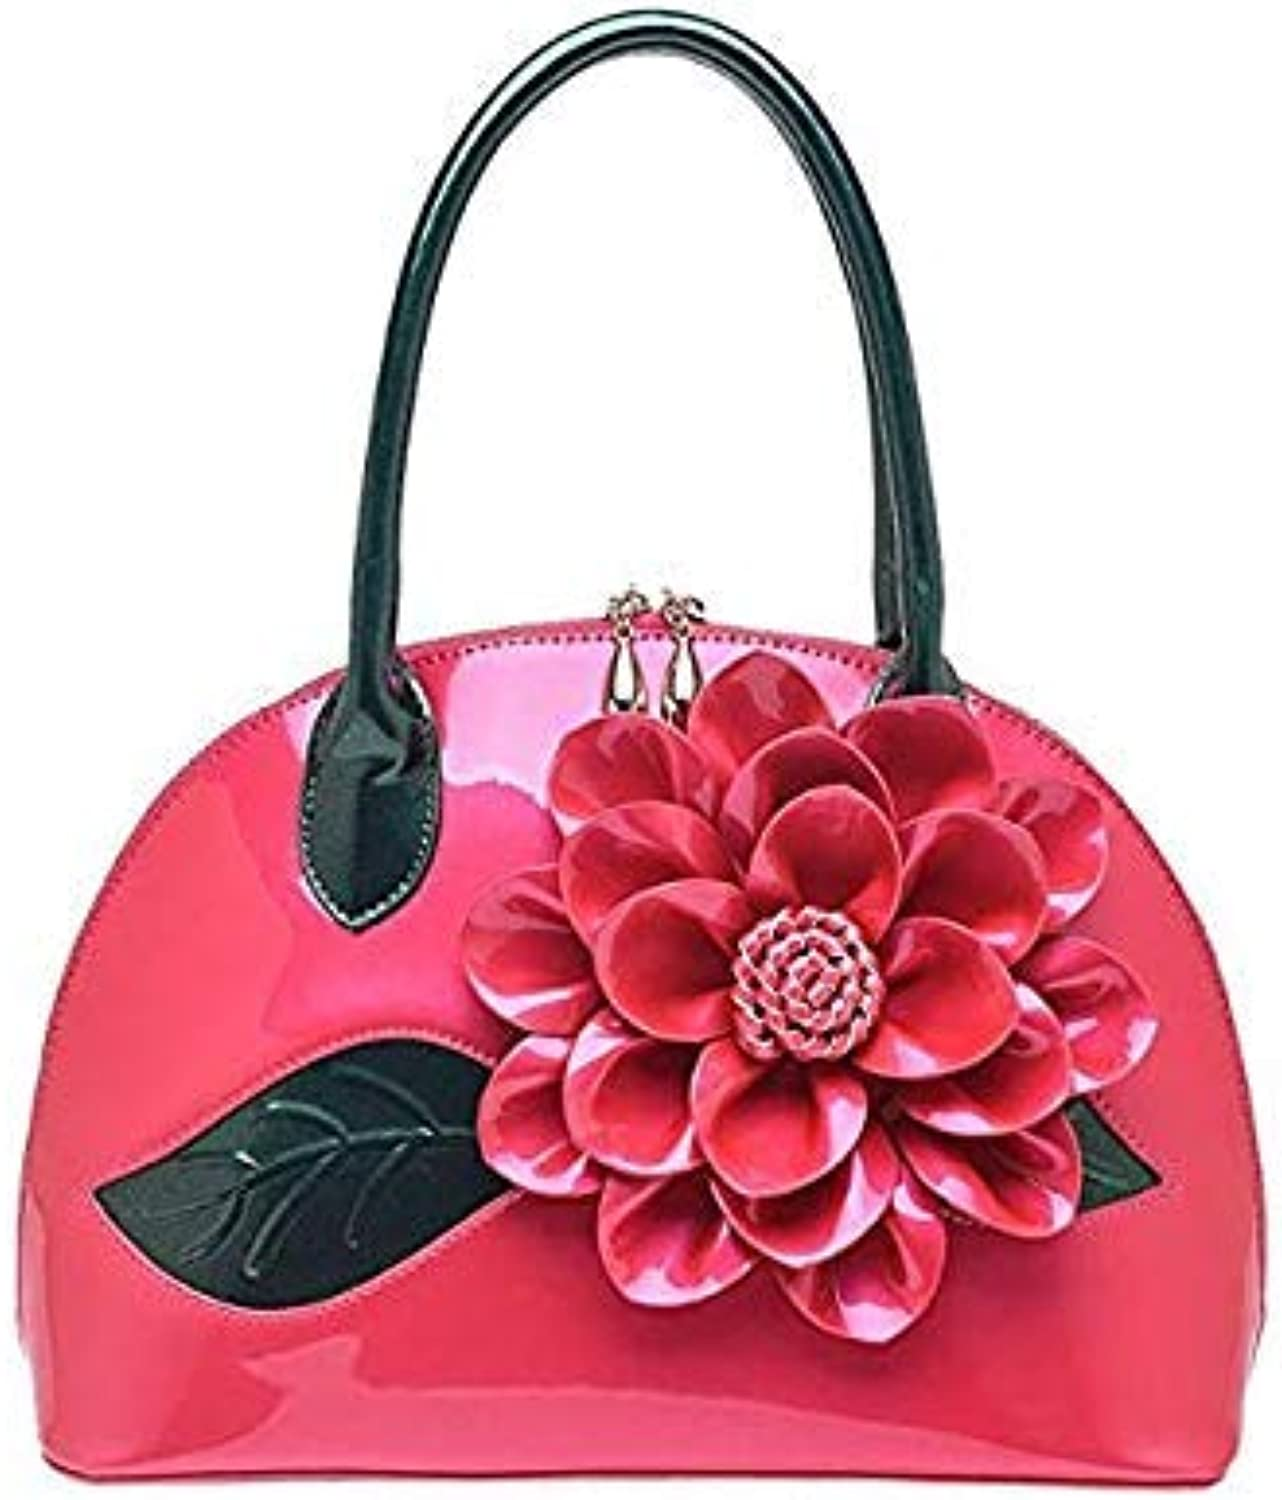 Bloomerang Big Flower Women Leather Handbags Luxury Women Handbag Famous Brands Female Tote Women Shoulder Bag Vintage Women Bag ZCP187 l color pink Women Bags 30x12x21CM